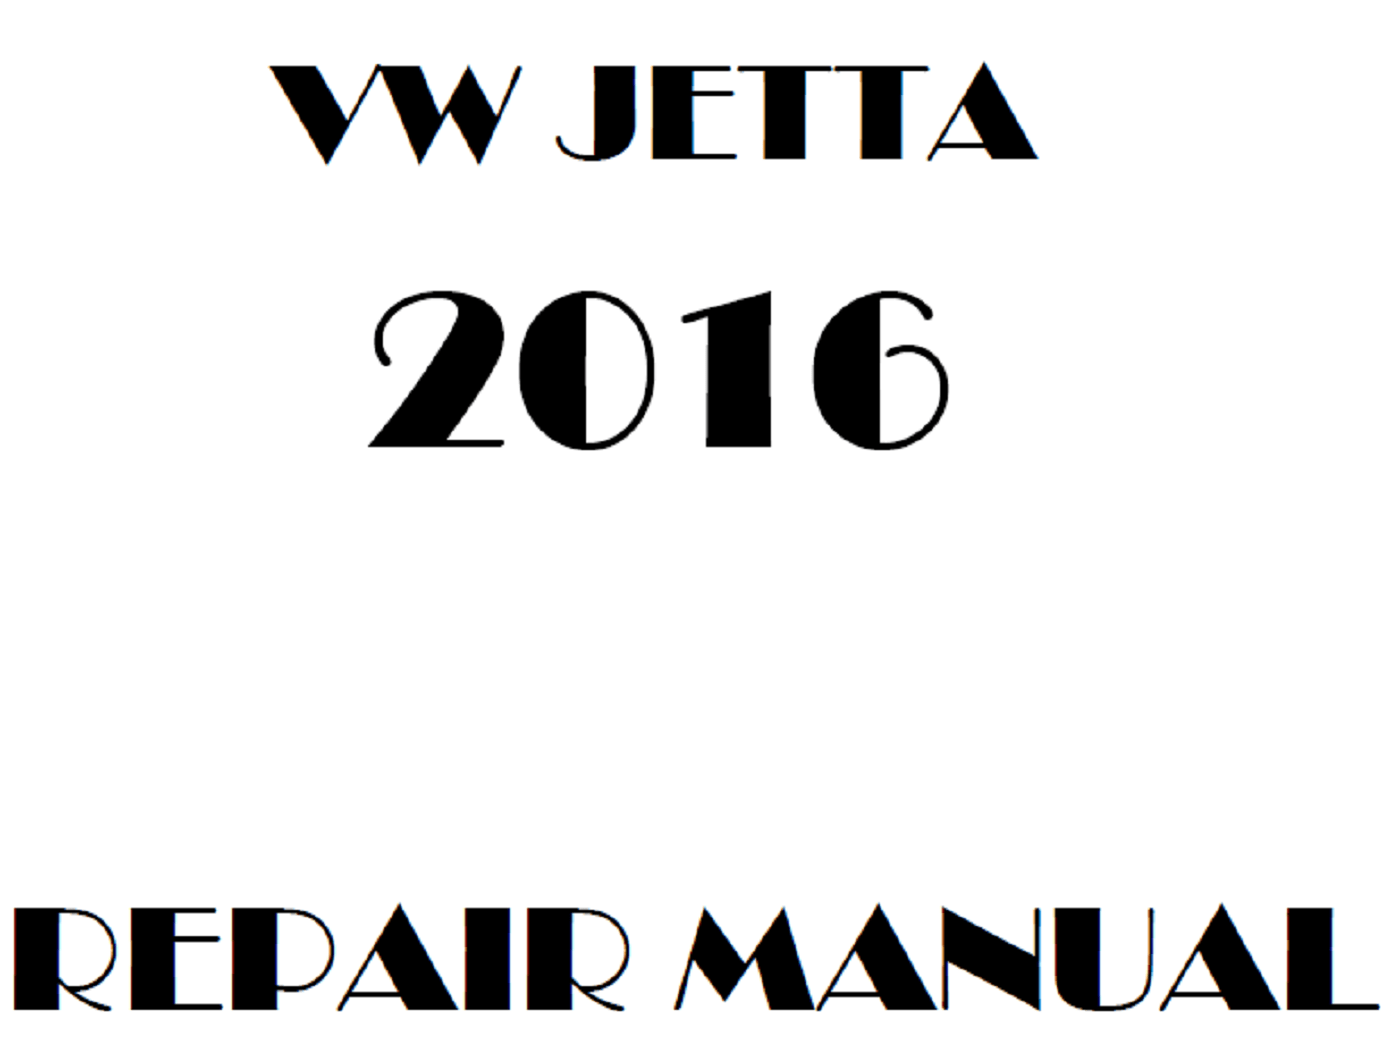 2016 Volkswagen Jetta repair manual